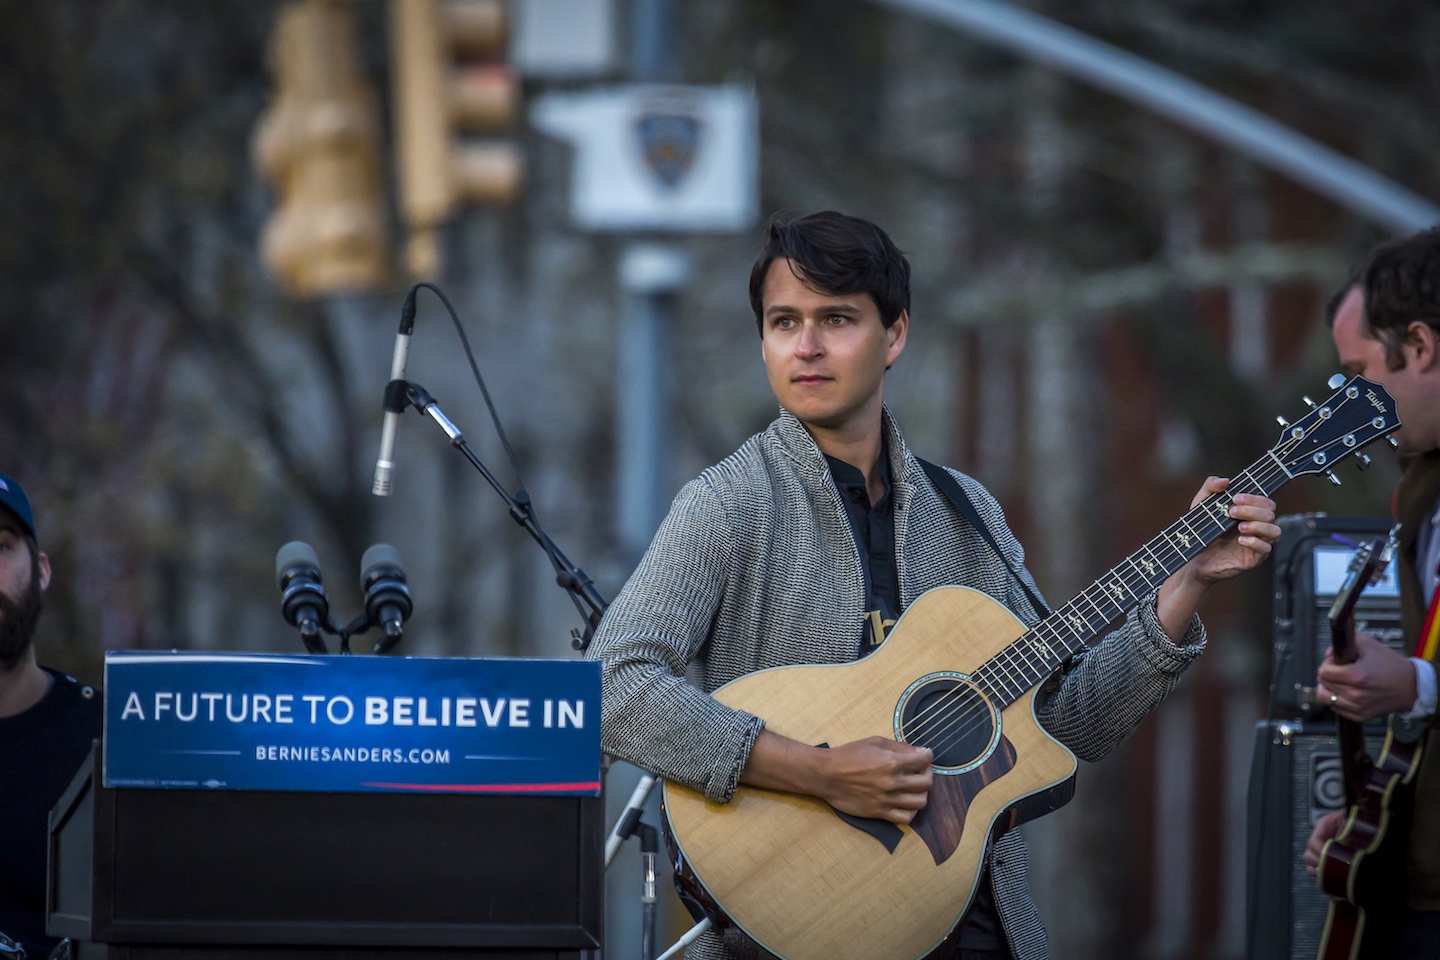 Vampire Weekend kicked off Bernie Sanders' Star-Studded Massive Rally in NYC's Washington Square Park. An estimated 27k flooded the iconic park and adjoining streets. Special Guests included: Vampire Weekend, Rosario Dawson, Spike Lee, Shailene Woodley, Linda Sarsour and Tim Robbins. Sanders goes up against Hillary Clinton in the hotly contested New York primary on April 19, 2016 (Photo by Michael Nigro / Pacific Press) *** Please Use Credit from Credit Field ***